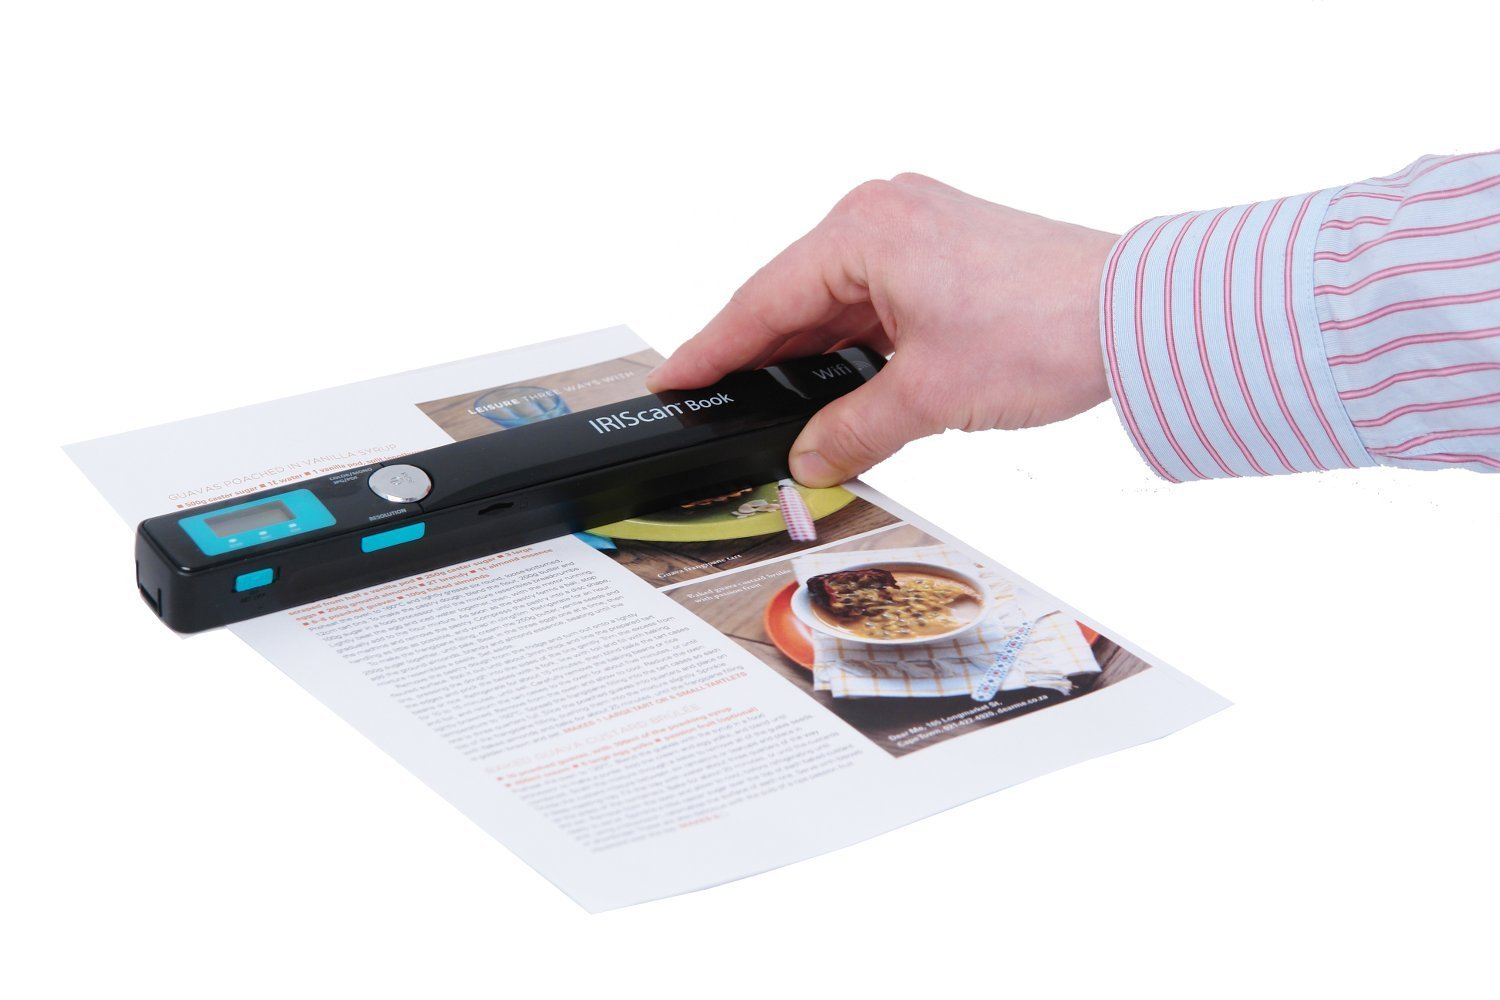 Comment fonctionne un scanner portable ?